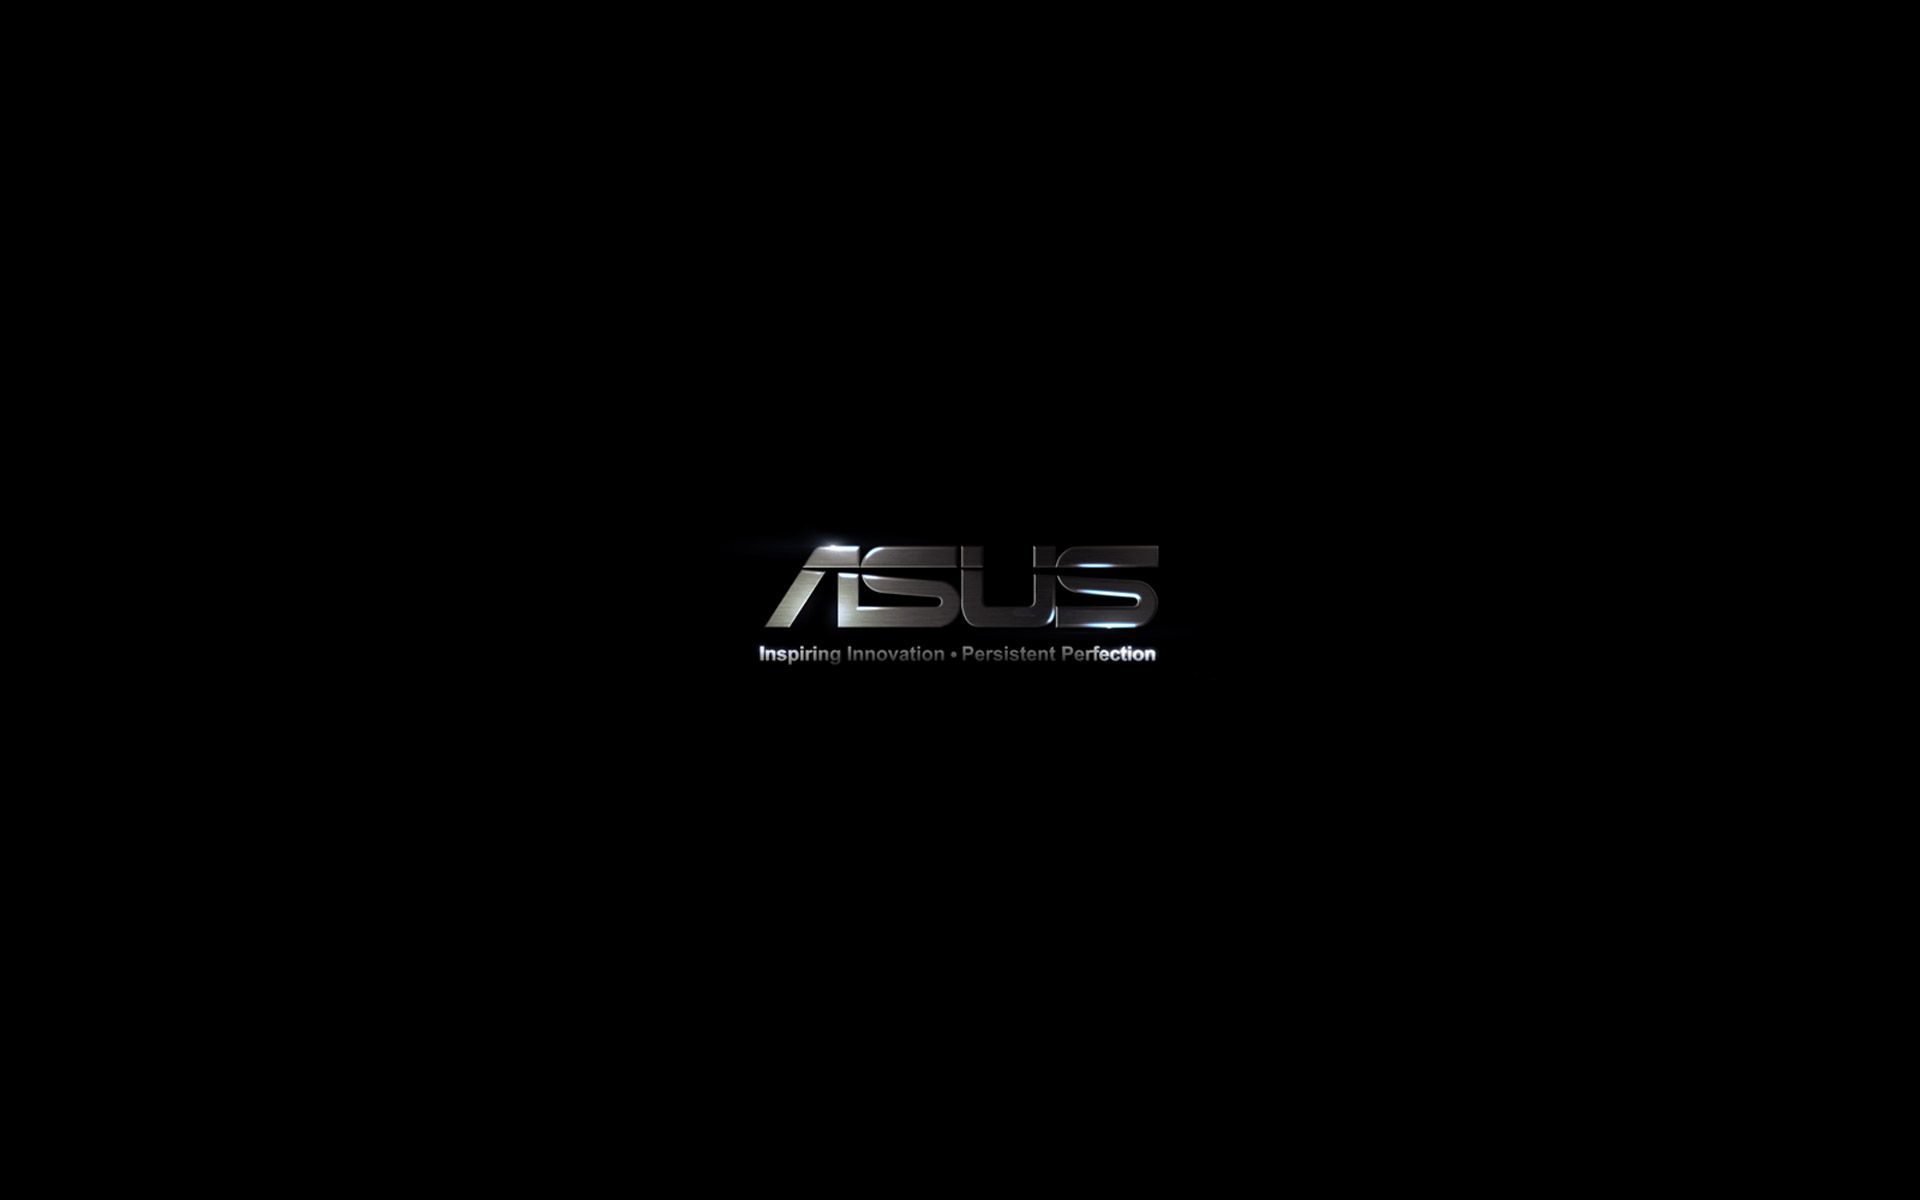 Asus full hd wallpapers wallpapersafari - Asus x series wallpaper hd ...